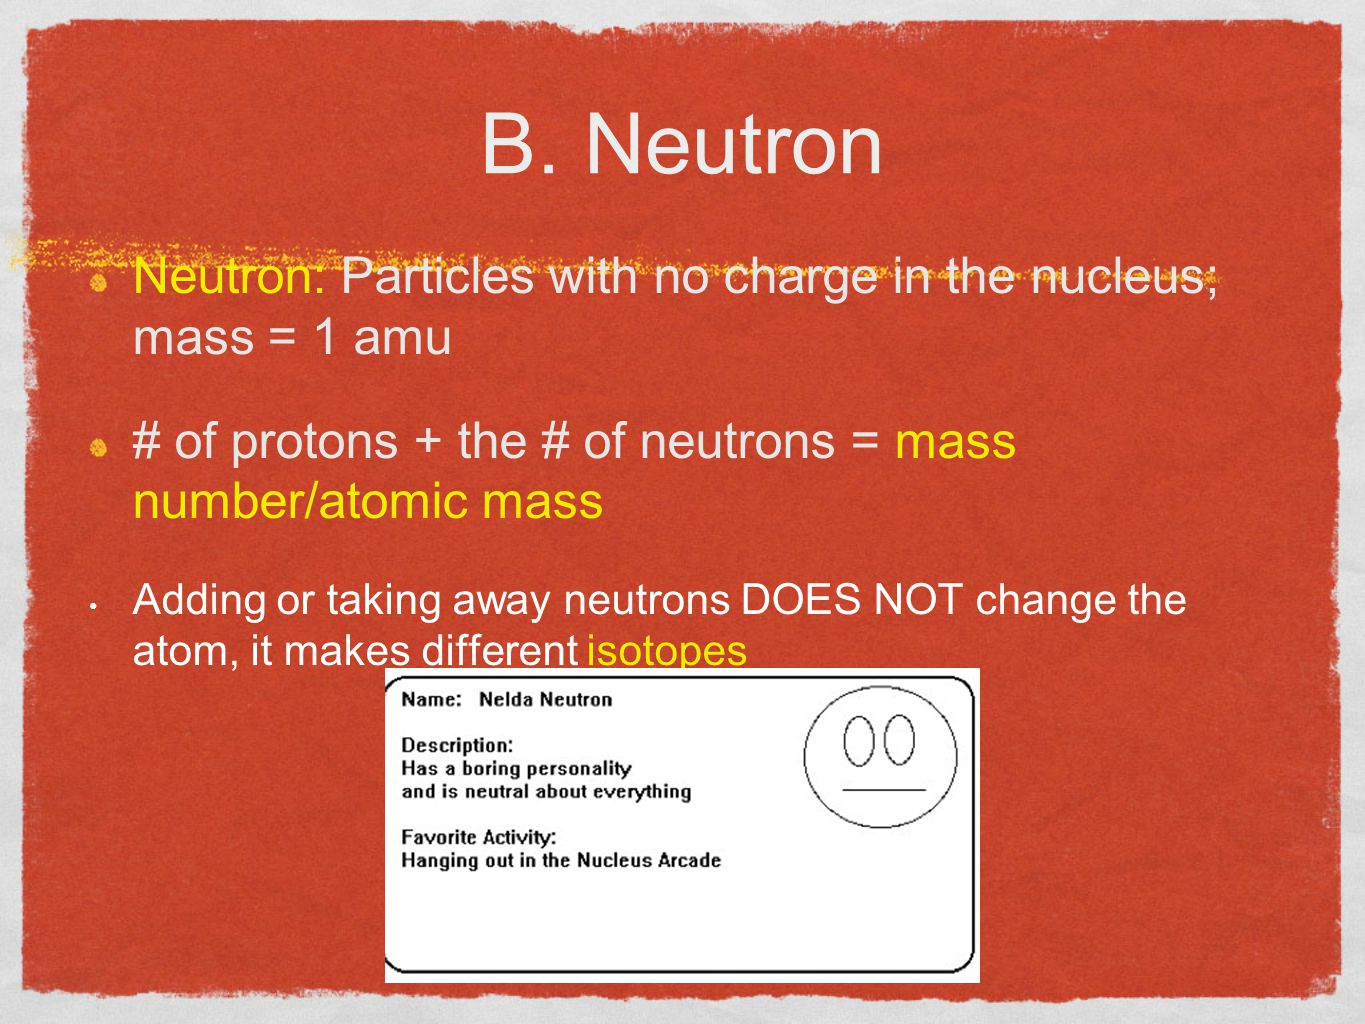 B. Neutron Neutron: Particles with no charge in the nucleus; mass = 1 amu. # of protons + the # of neutrons = mass number/atomic mass.